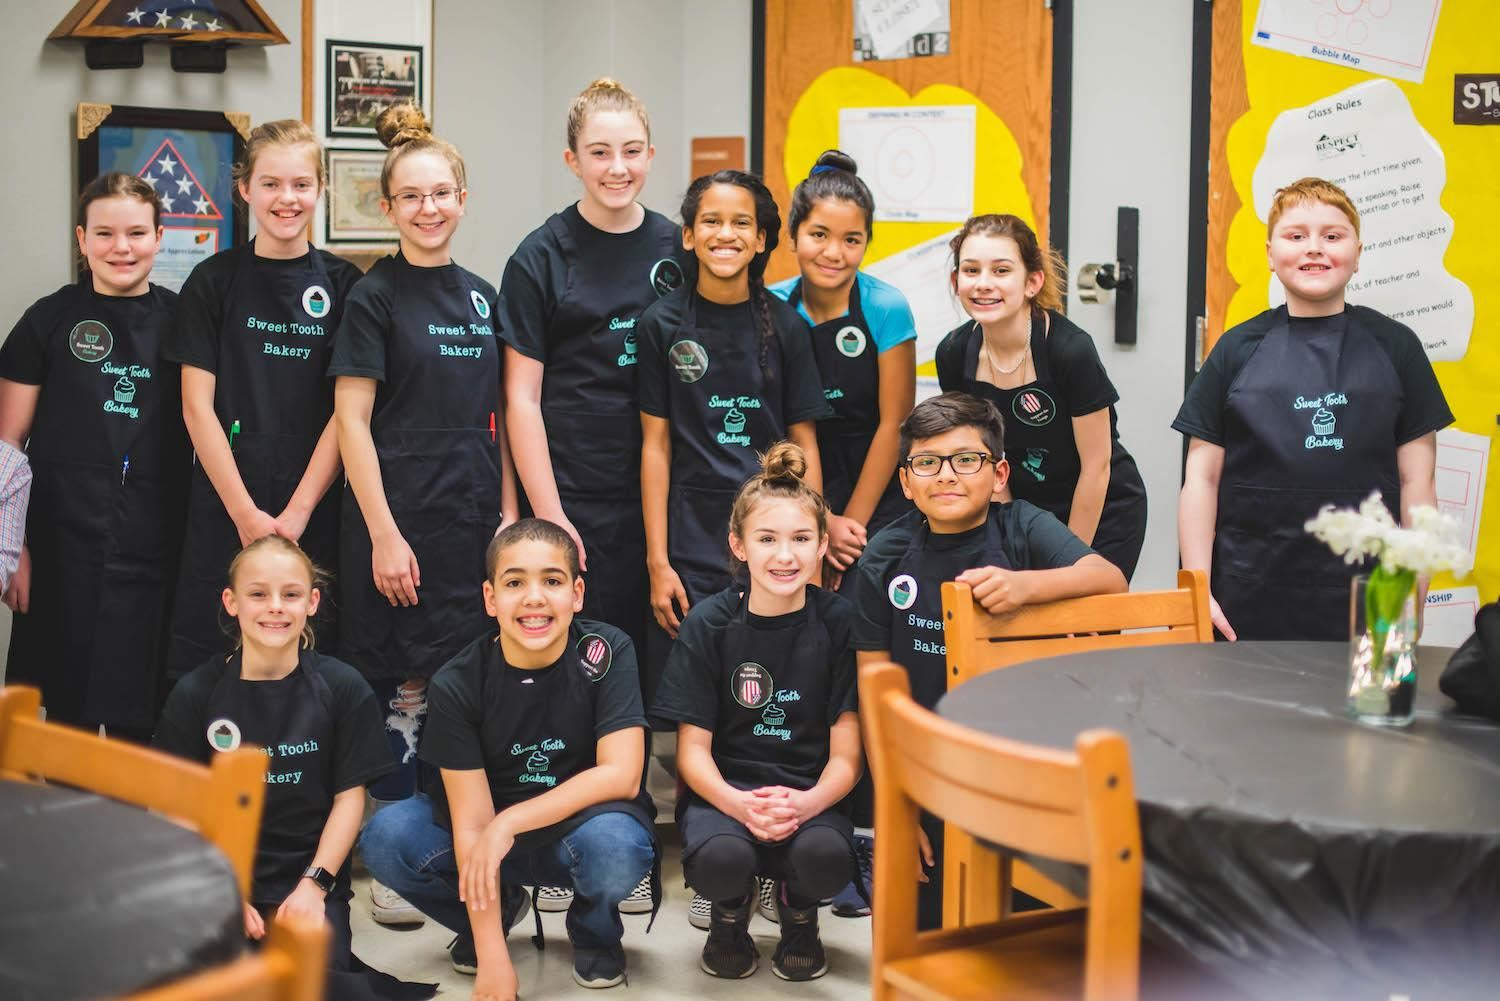 group of students in aprons smile together